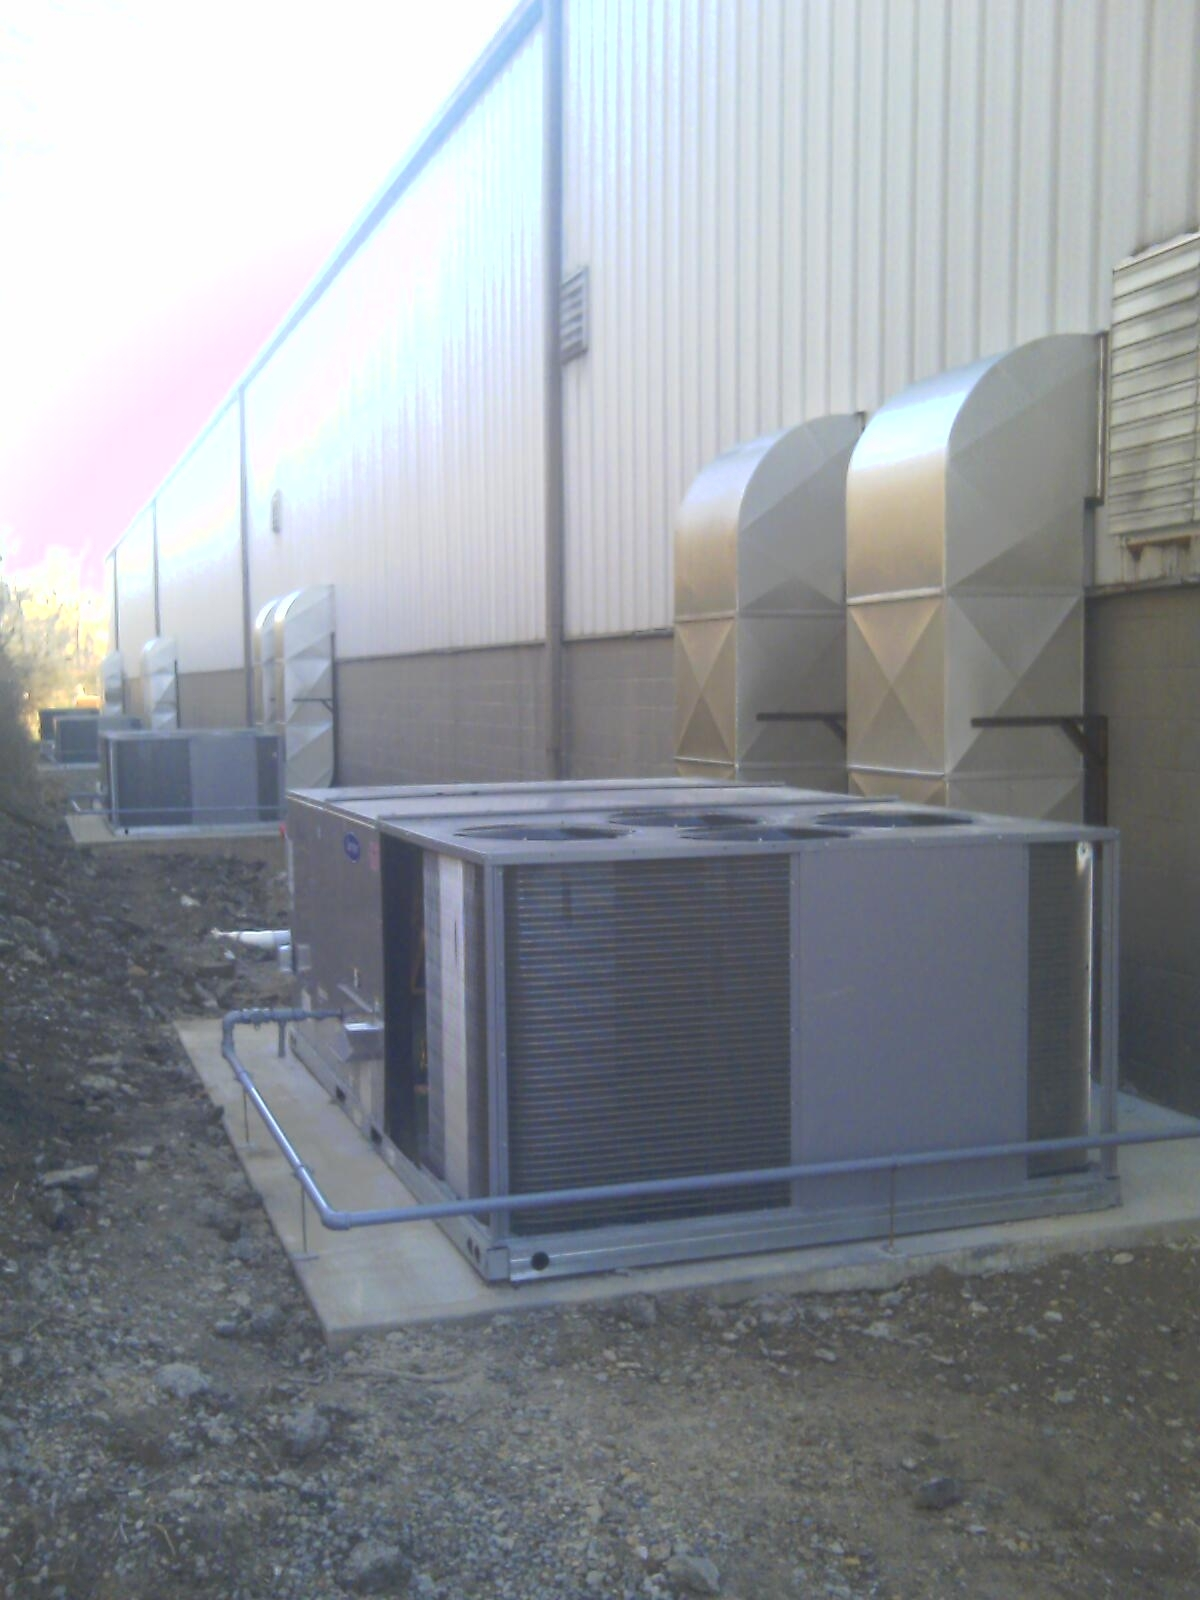 Wes's Heating & Cooling image 5